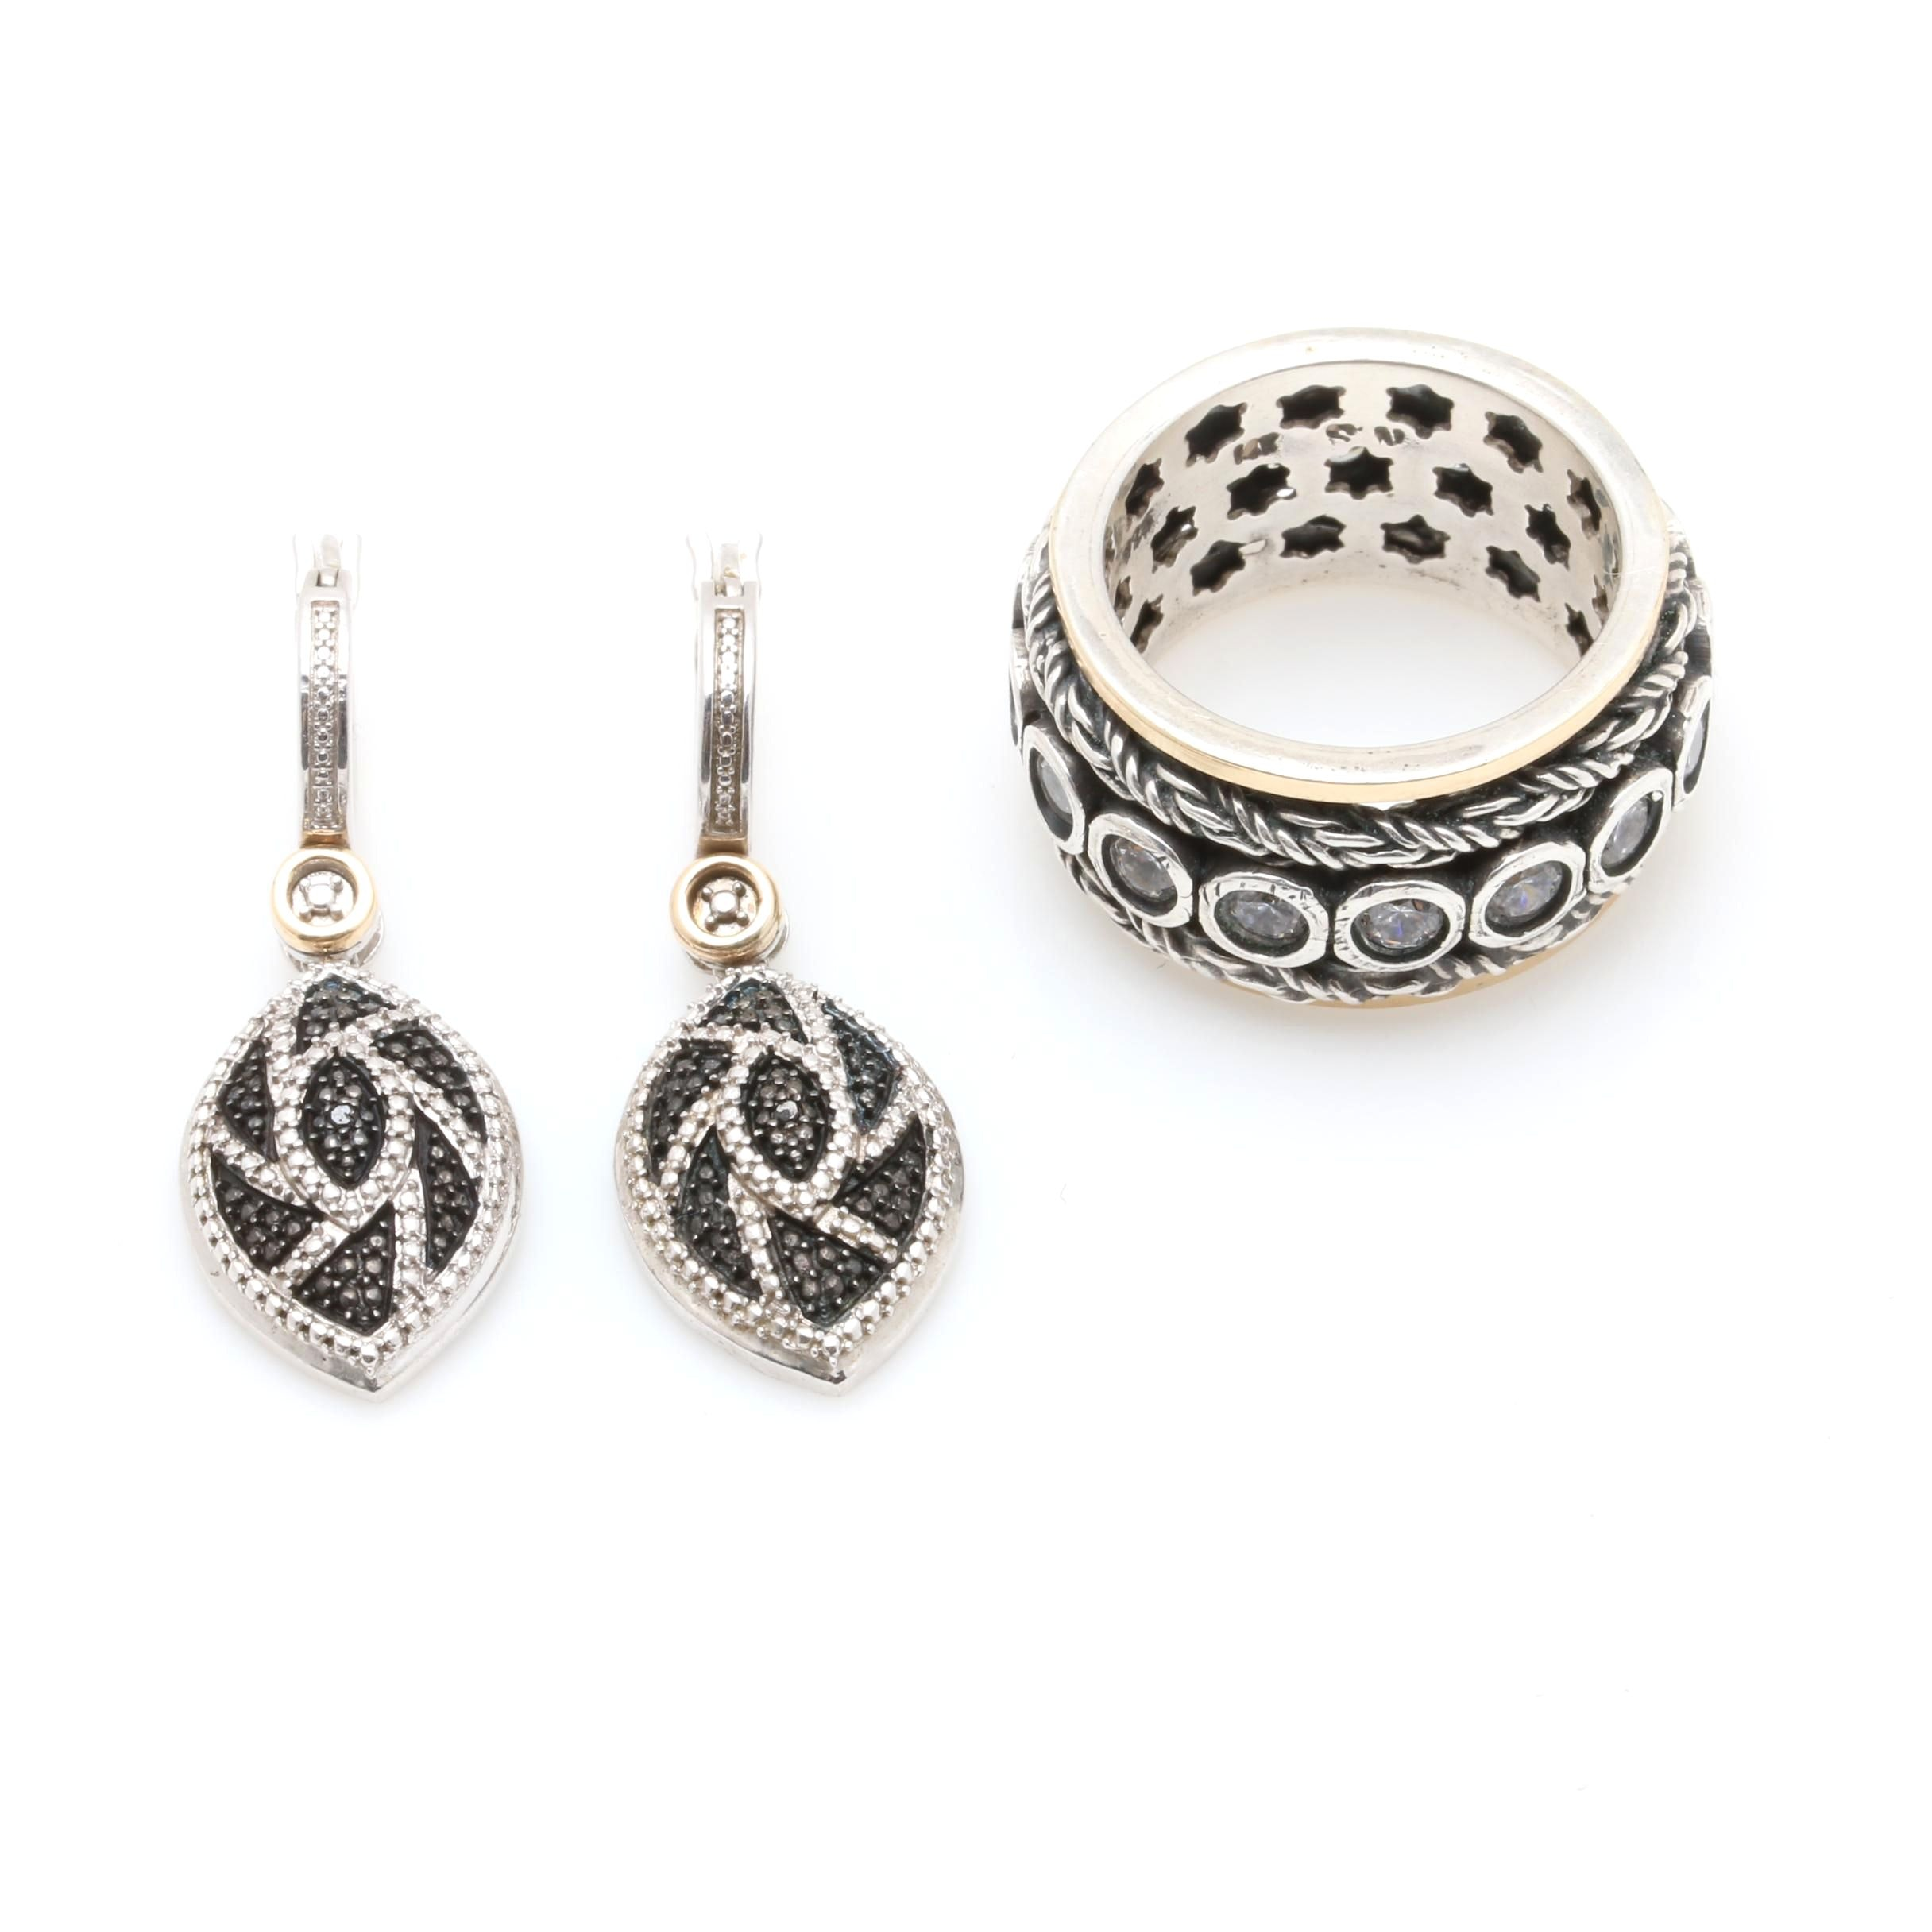 Sterling Silver Jewelry Featuring Black Diamonds and Cubic Zirconia